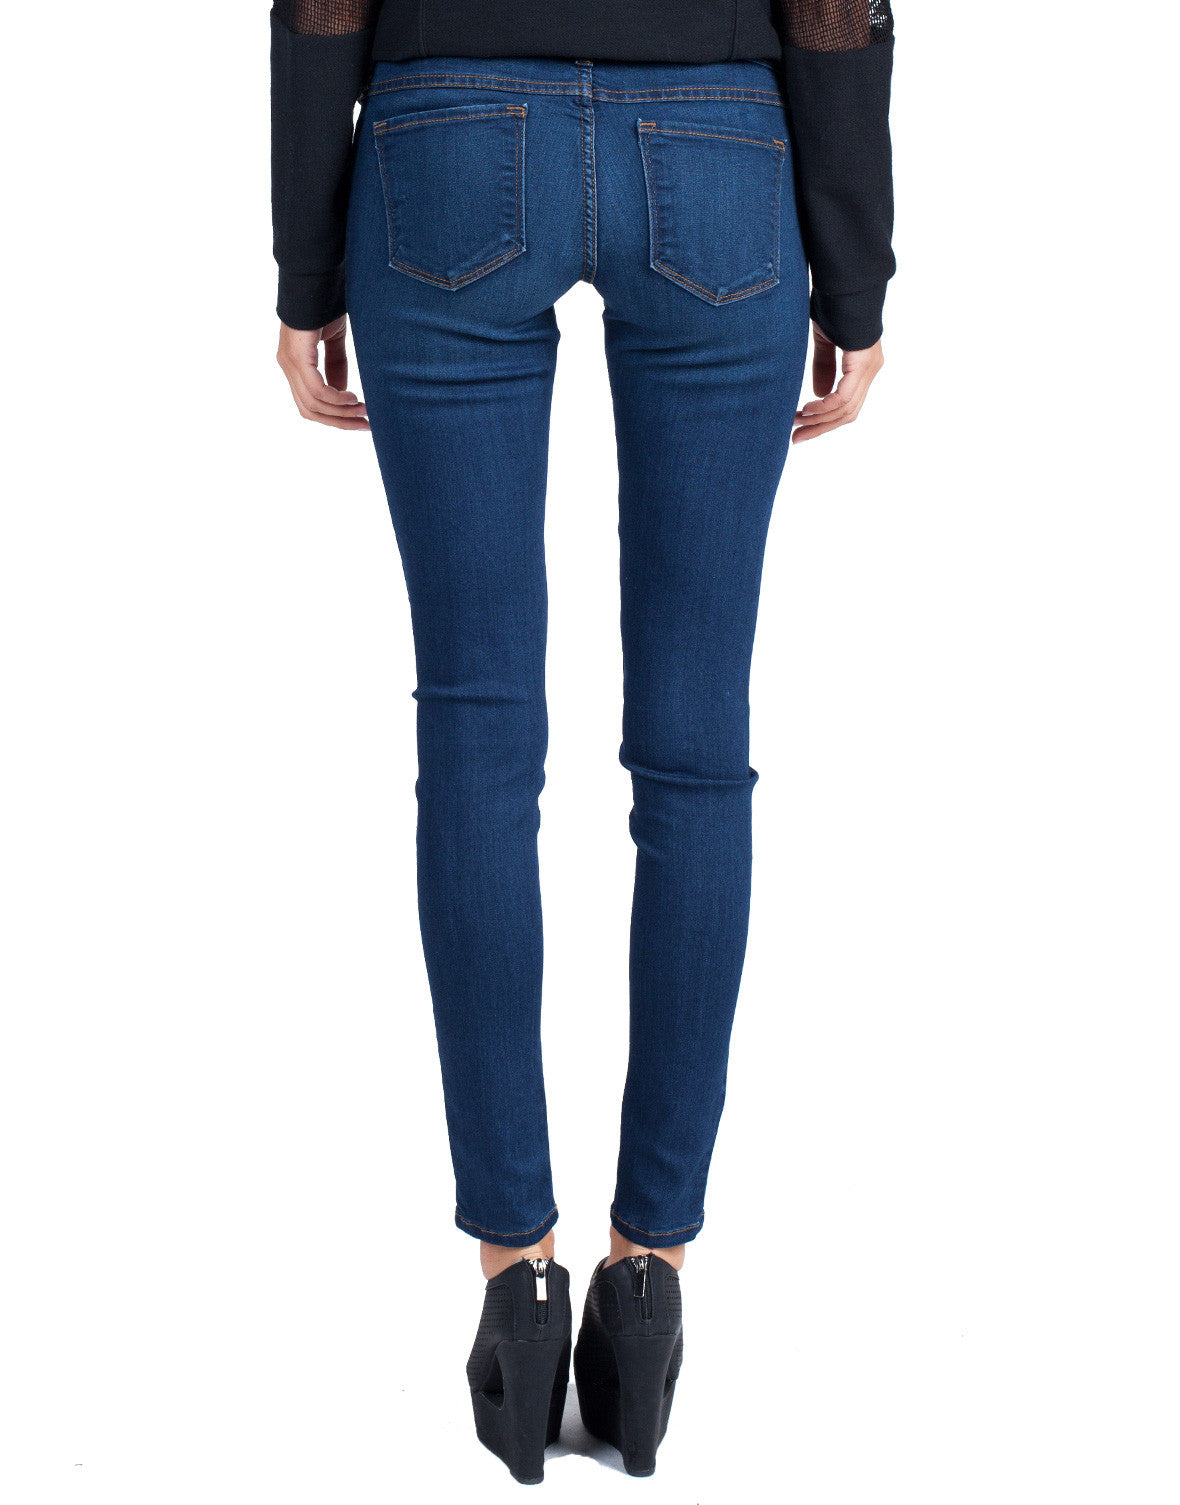 Flying Monkey Jeans - Baby Blues Denim Skinnies